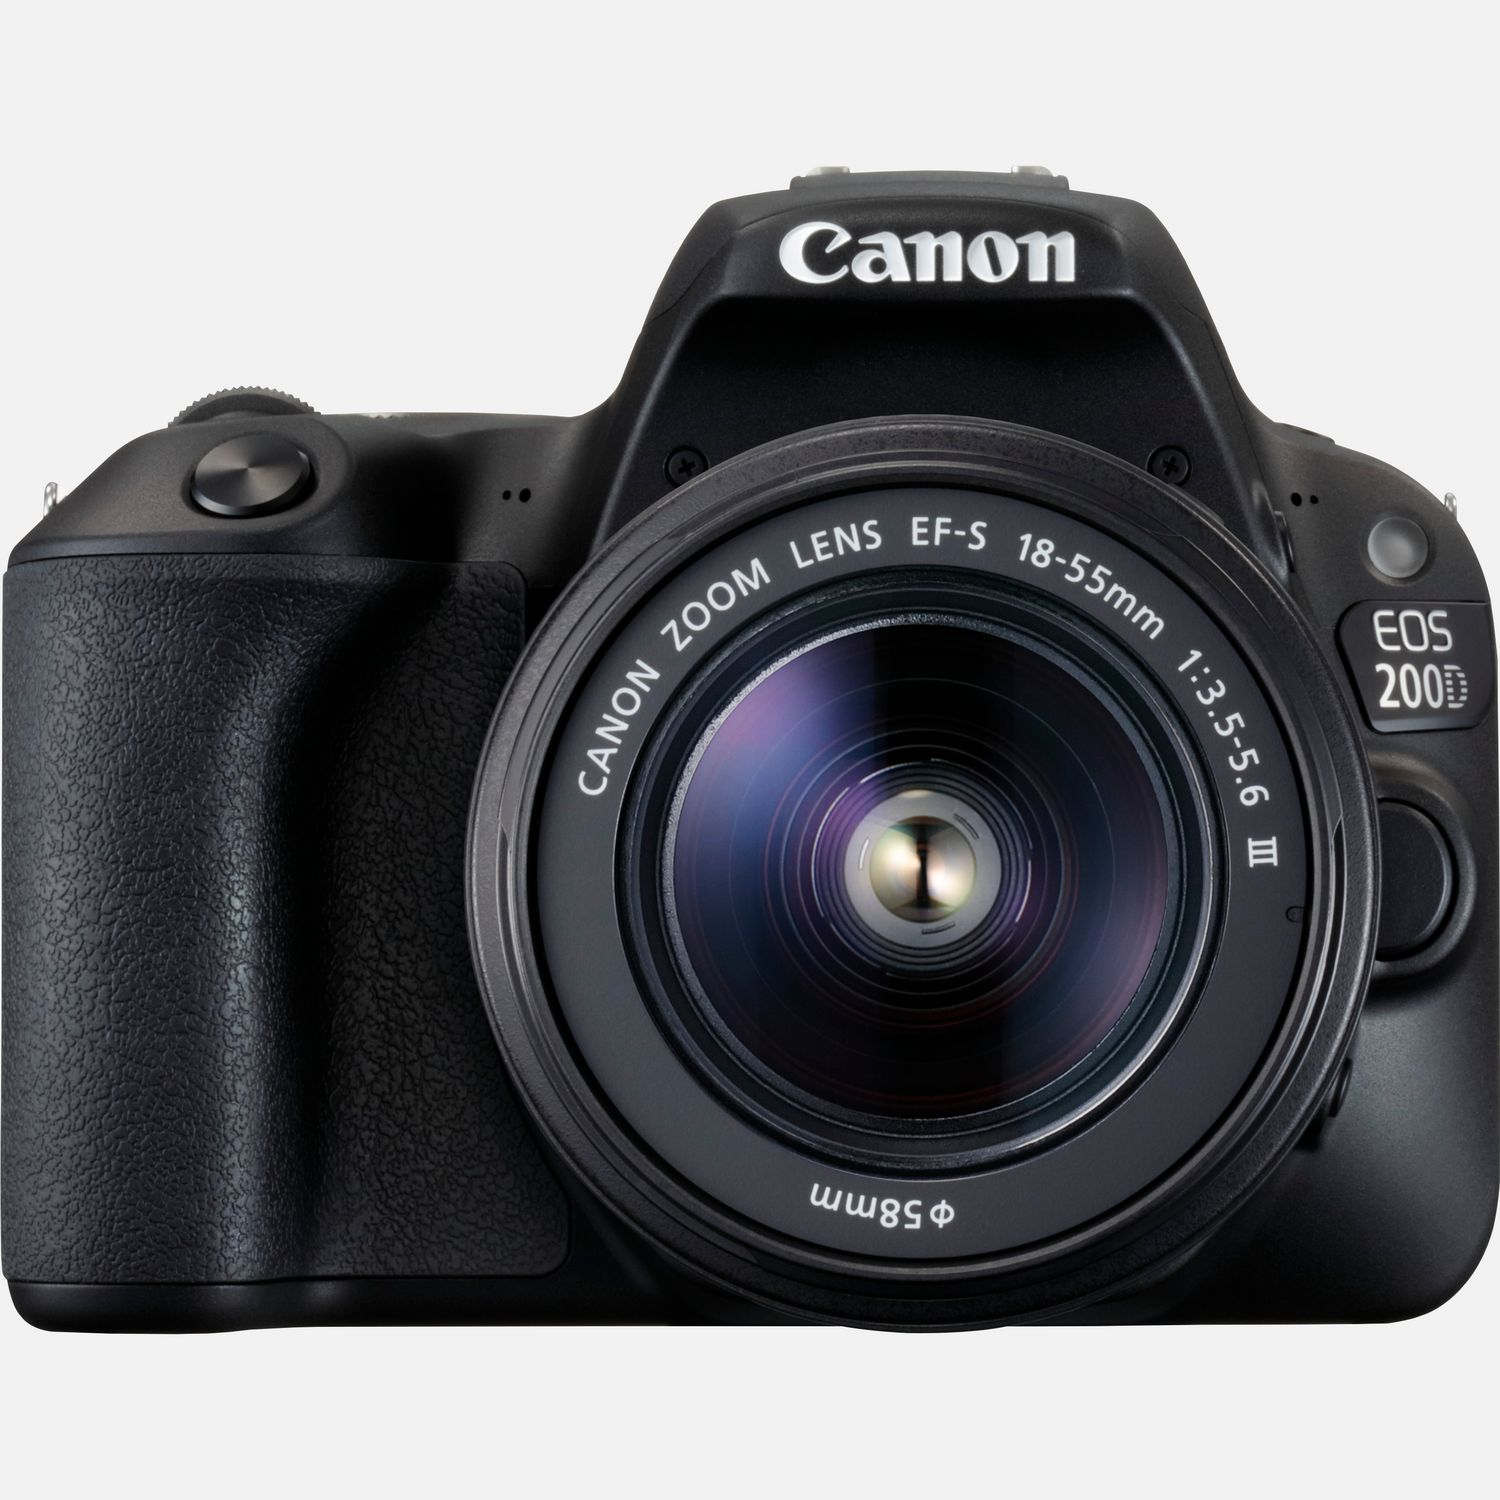 Image of Canon EOS 200D Black and EF-S 18-55mm f/3.5-5.6 III Lens